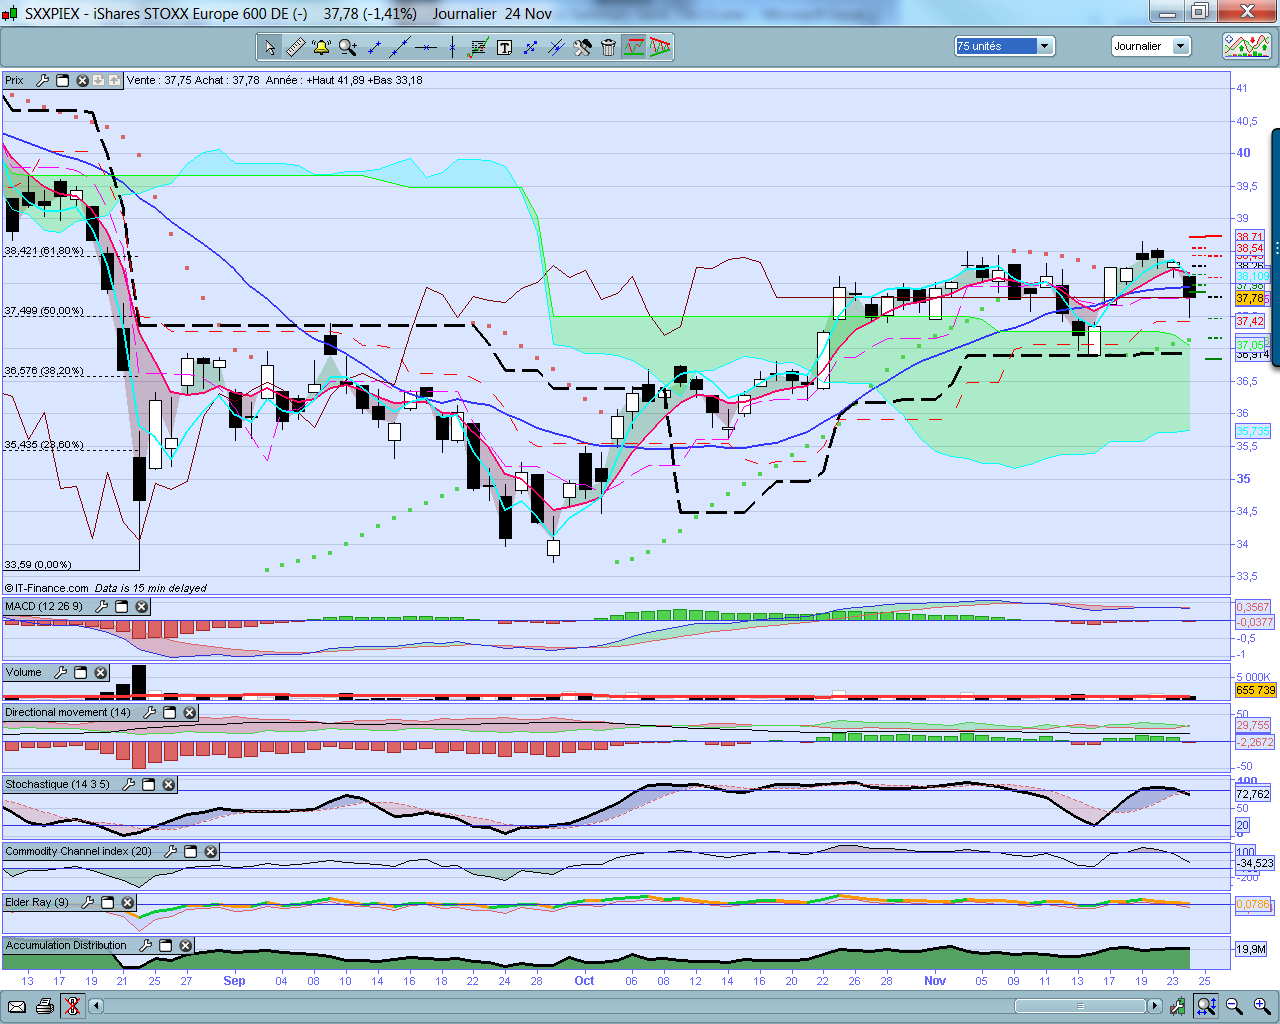 Stoxx 600 journ 2015-11-24_18-08-13.png